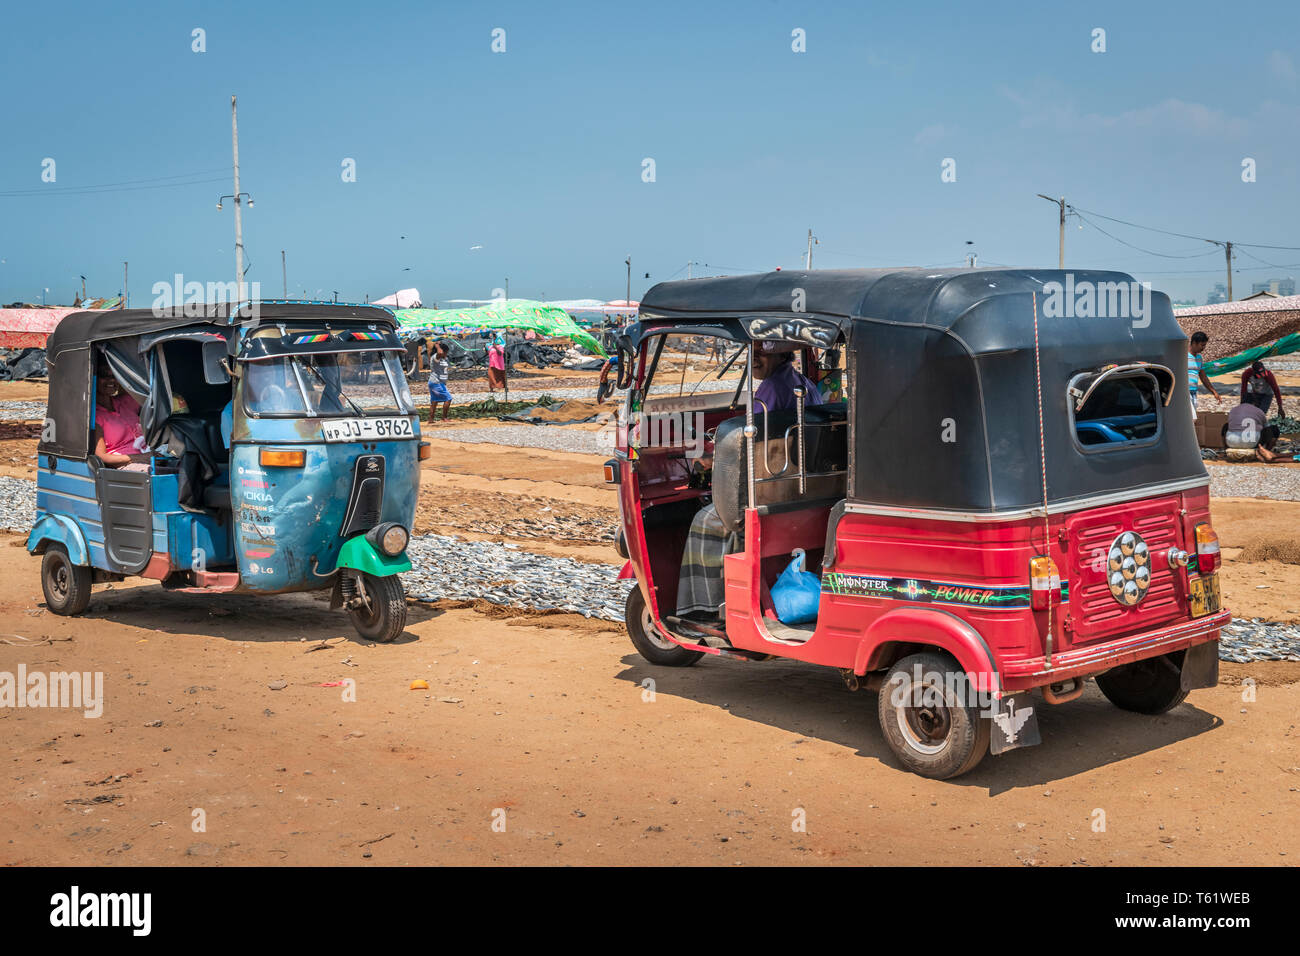 Two tuk tuks motorised rickshaws wait for customers at the famous negombo fish market